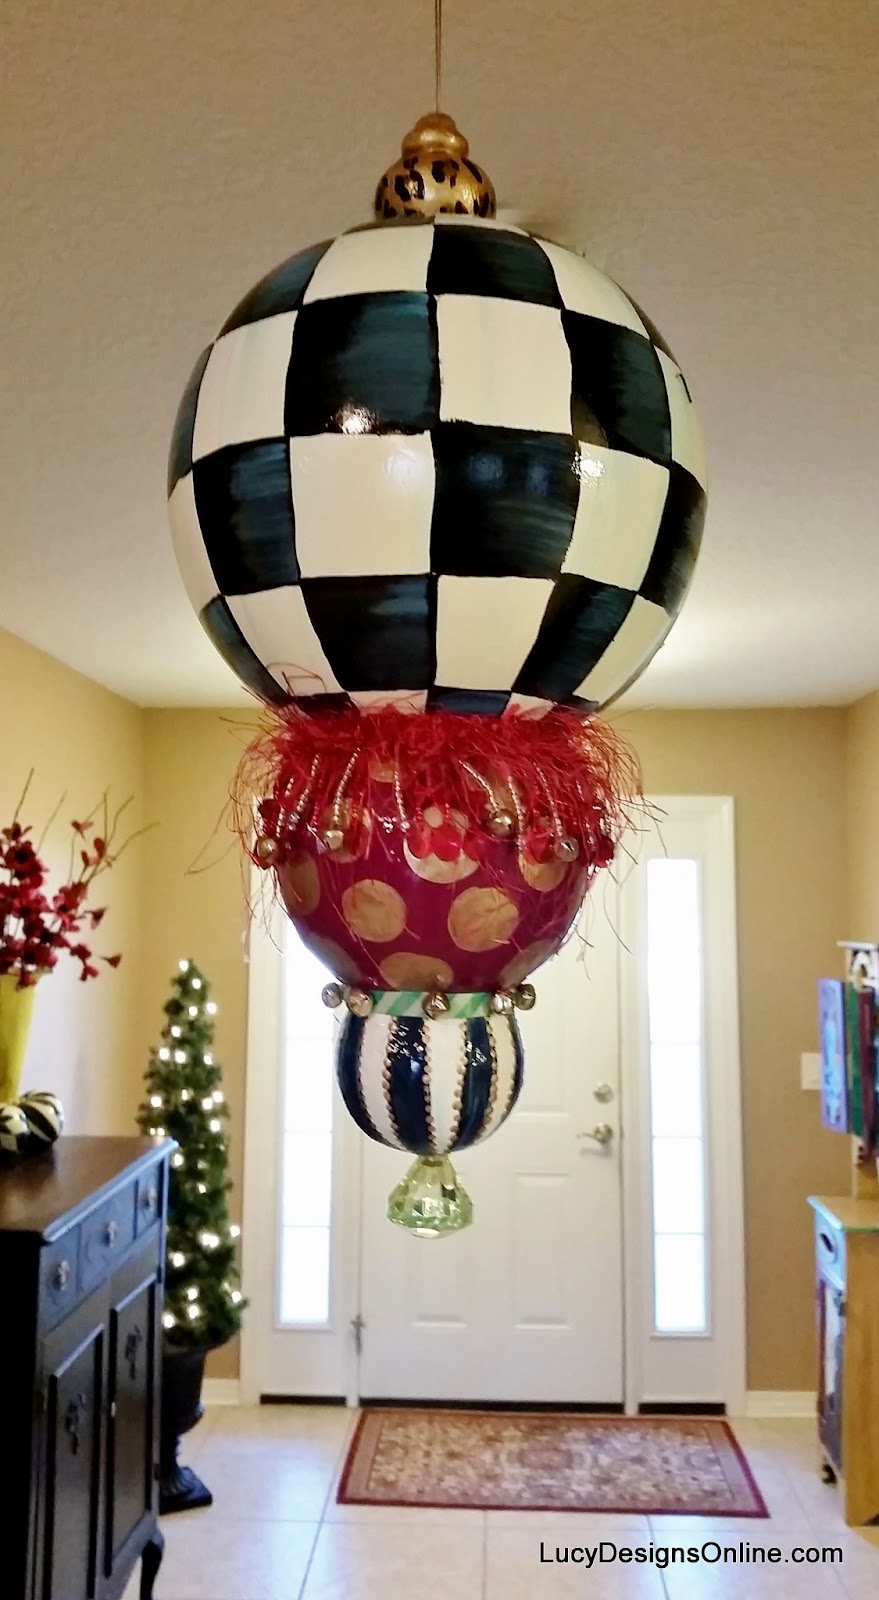 Hand Painted Christmas Ornaments, Black And White Checks, Stripes,  Harlequin Designs And A Giant Kissing Ball